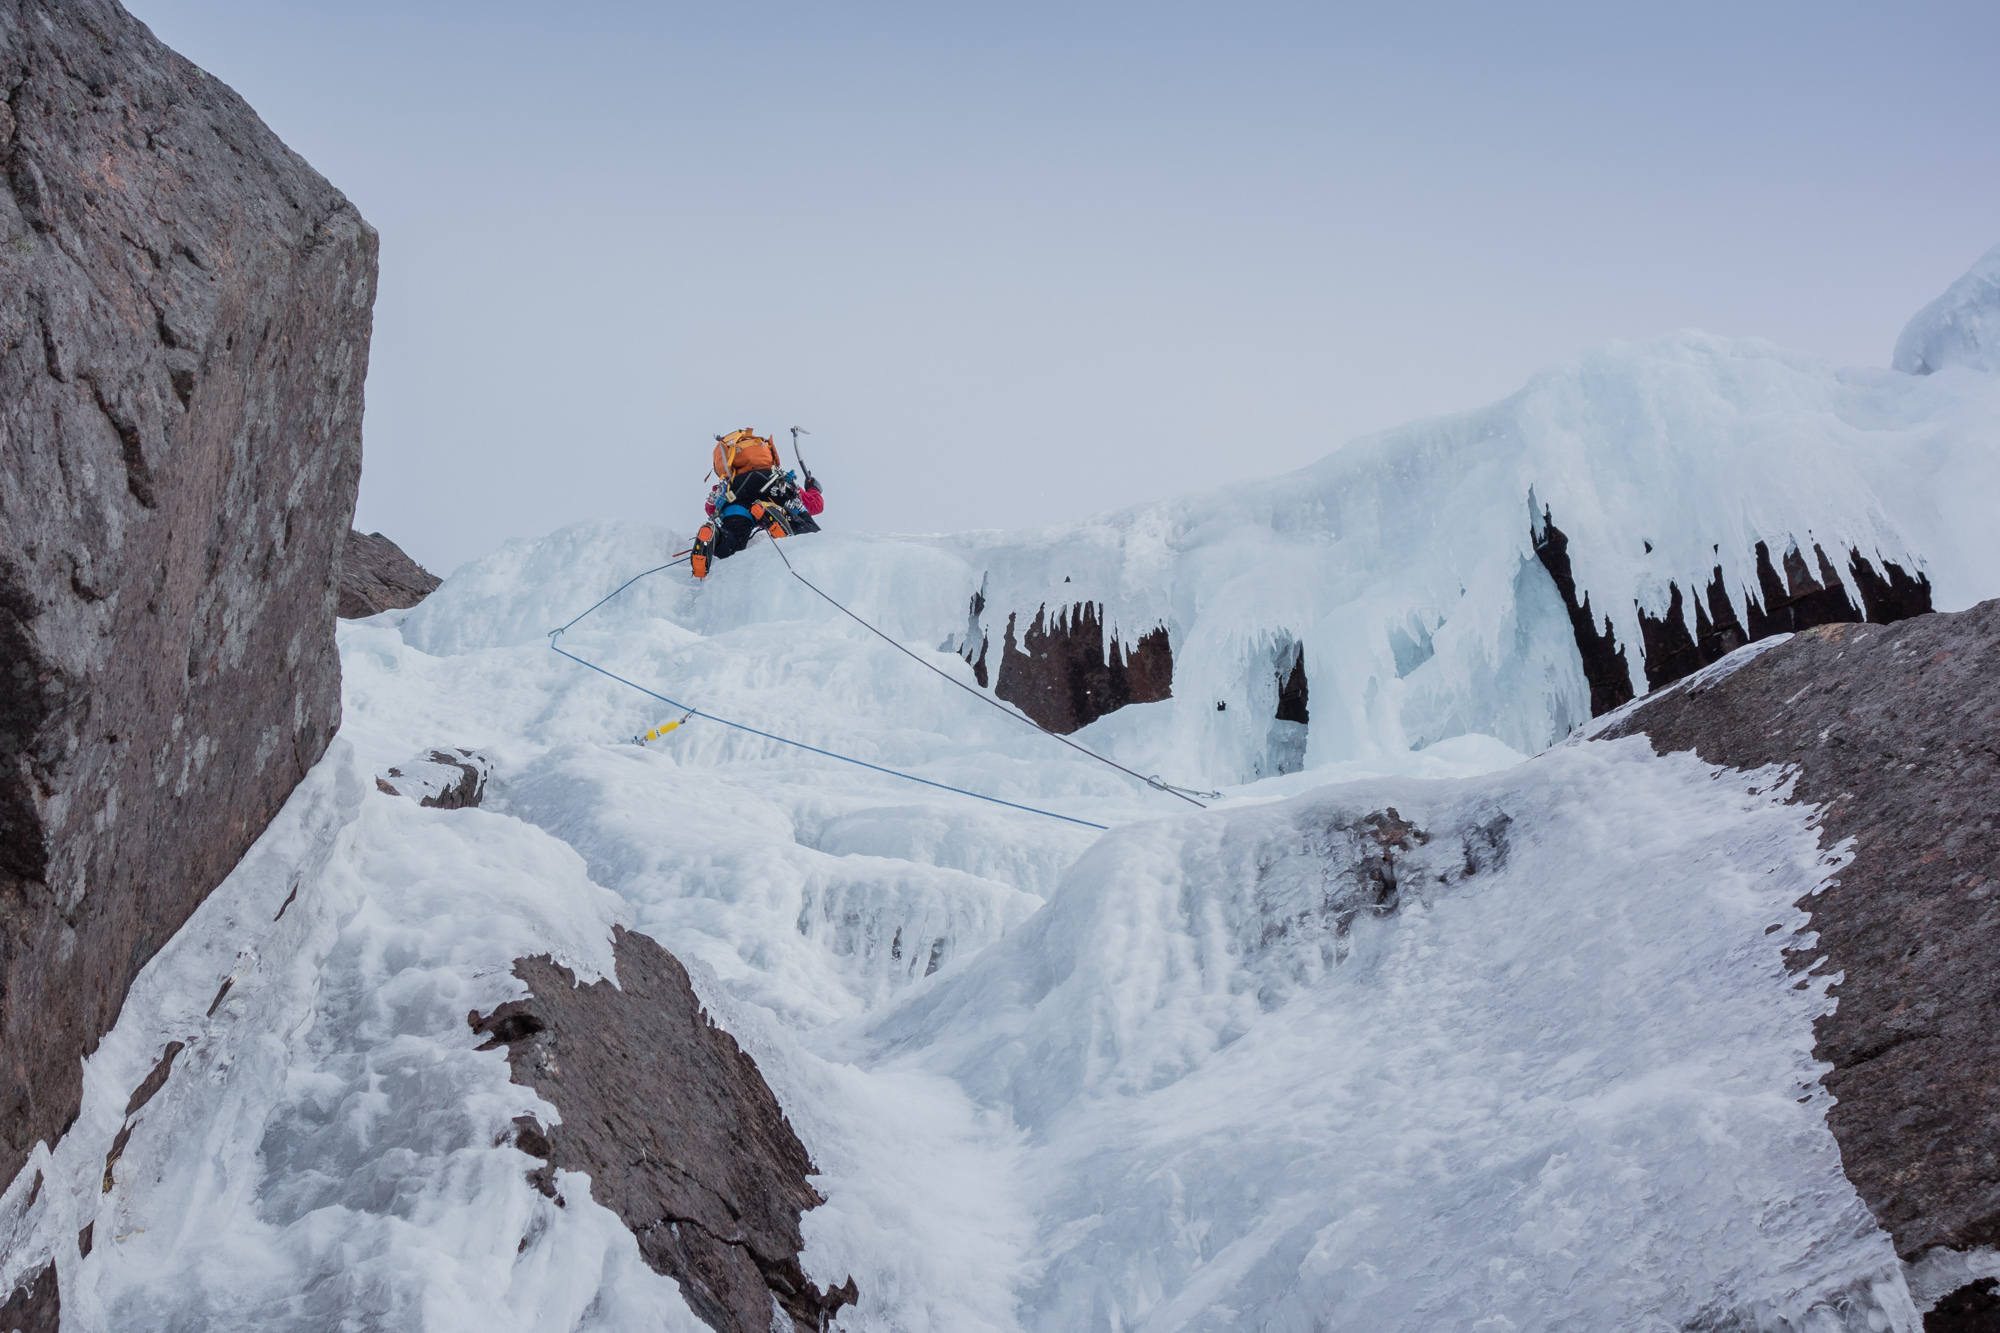 Andy pulling the final bulge on the crux second pitch - good ice where we needed it! Photo credit: Joe Dobson